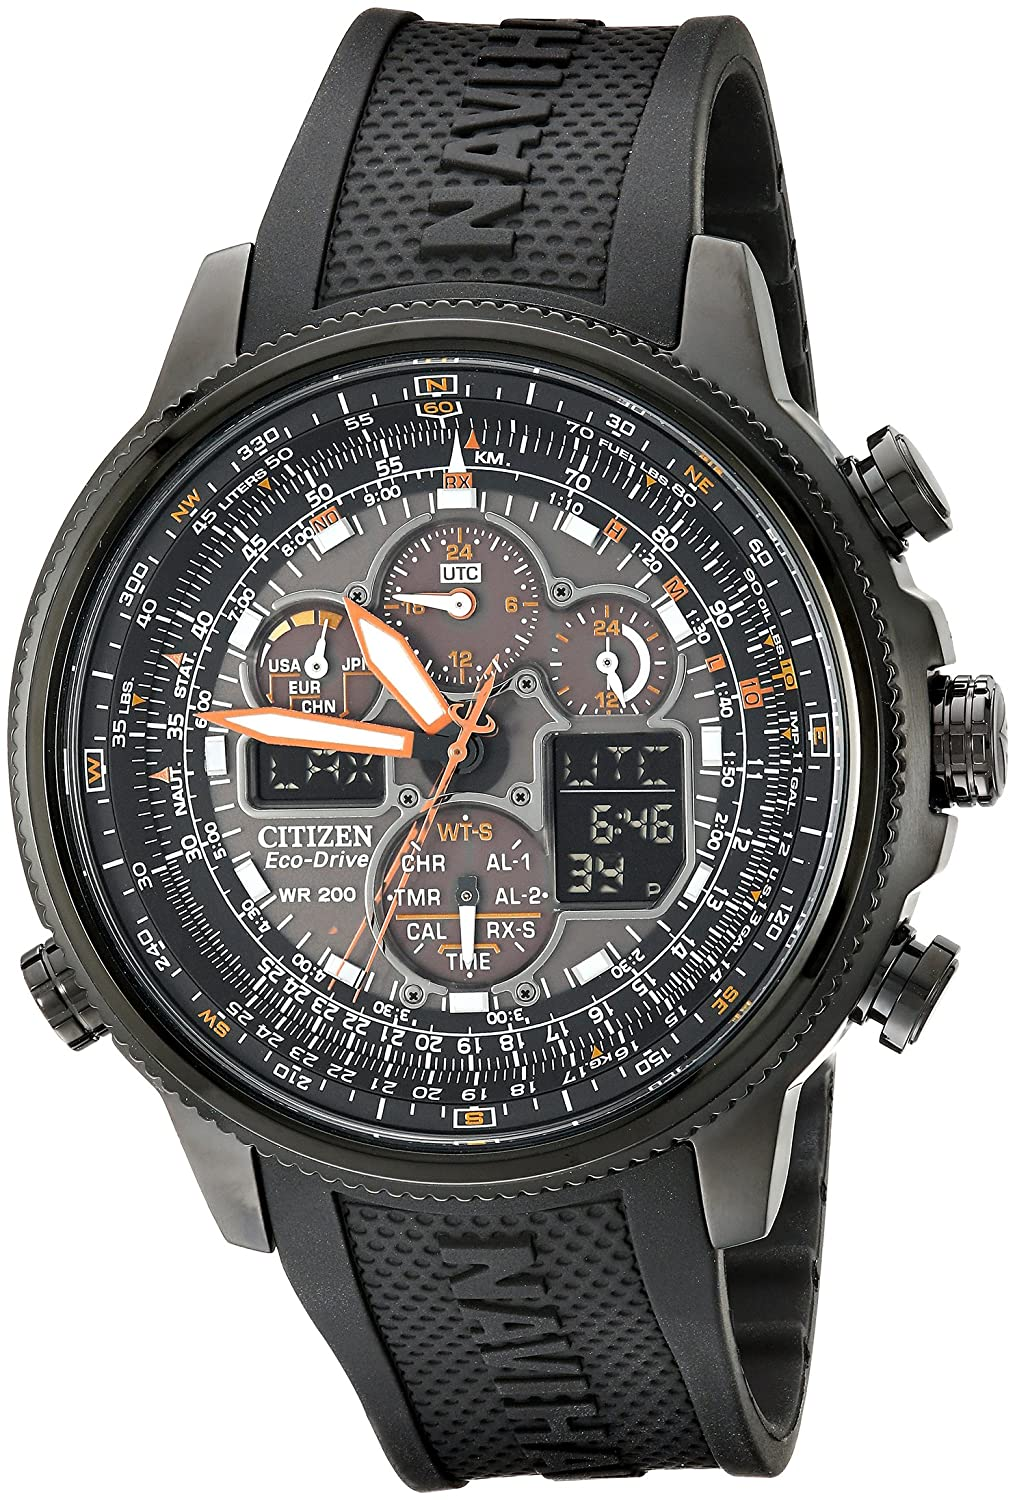 buy citizen watch jy8035 04e men s online at low prices in buy citizen watch jy8035 04e men s online at low prices in amazon in